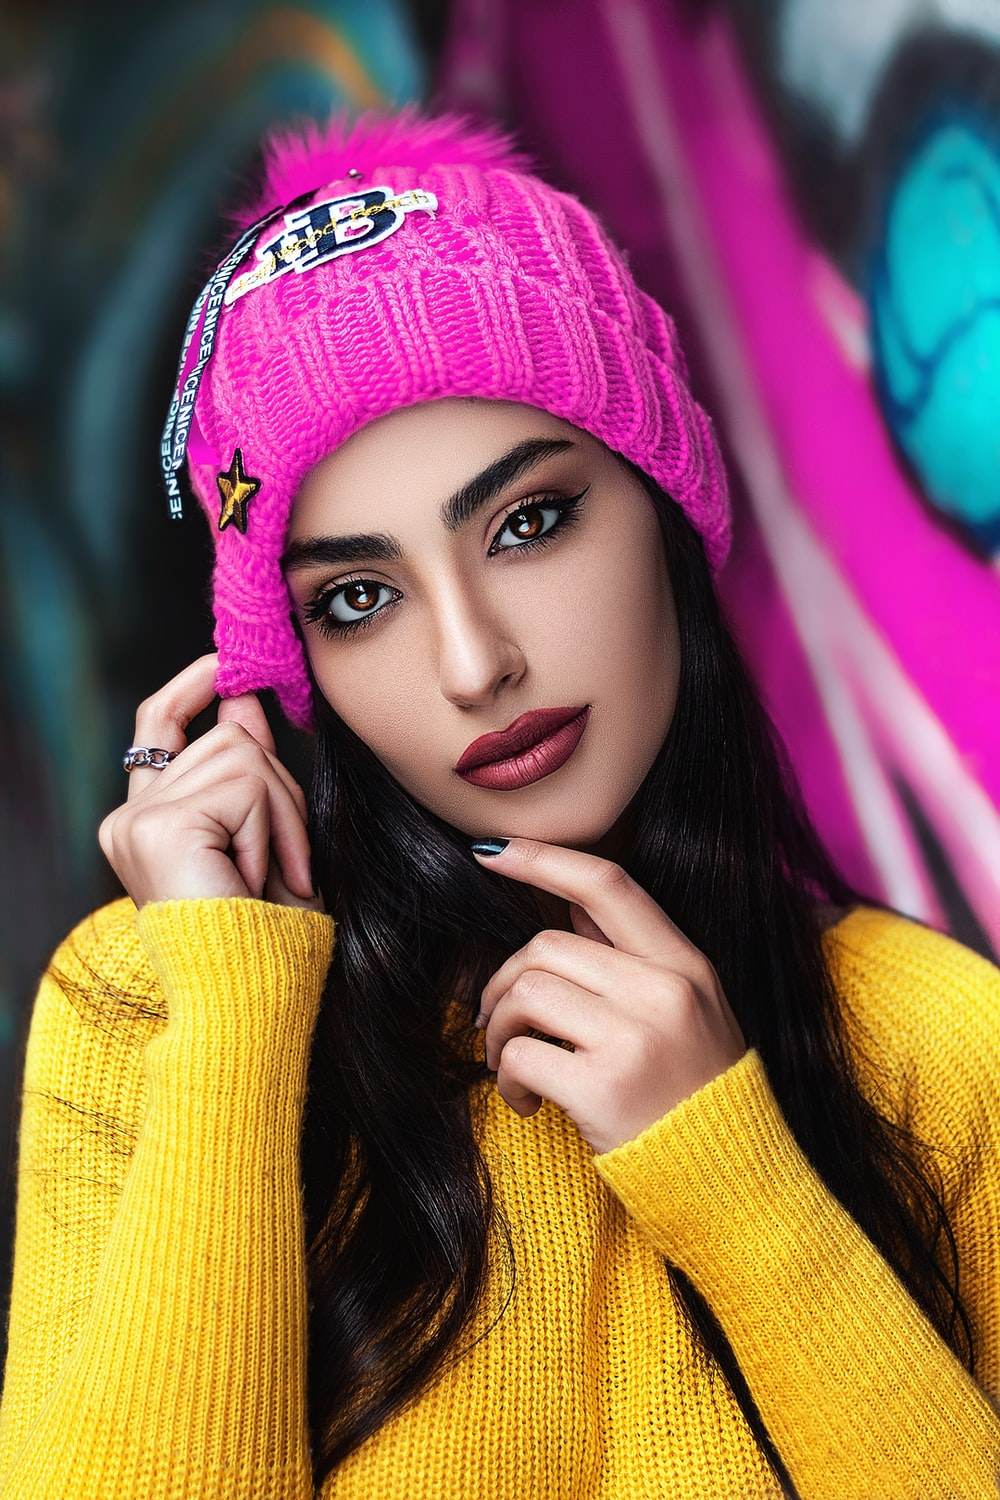 woman in yellow knit sweater and knit cap